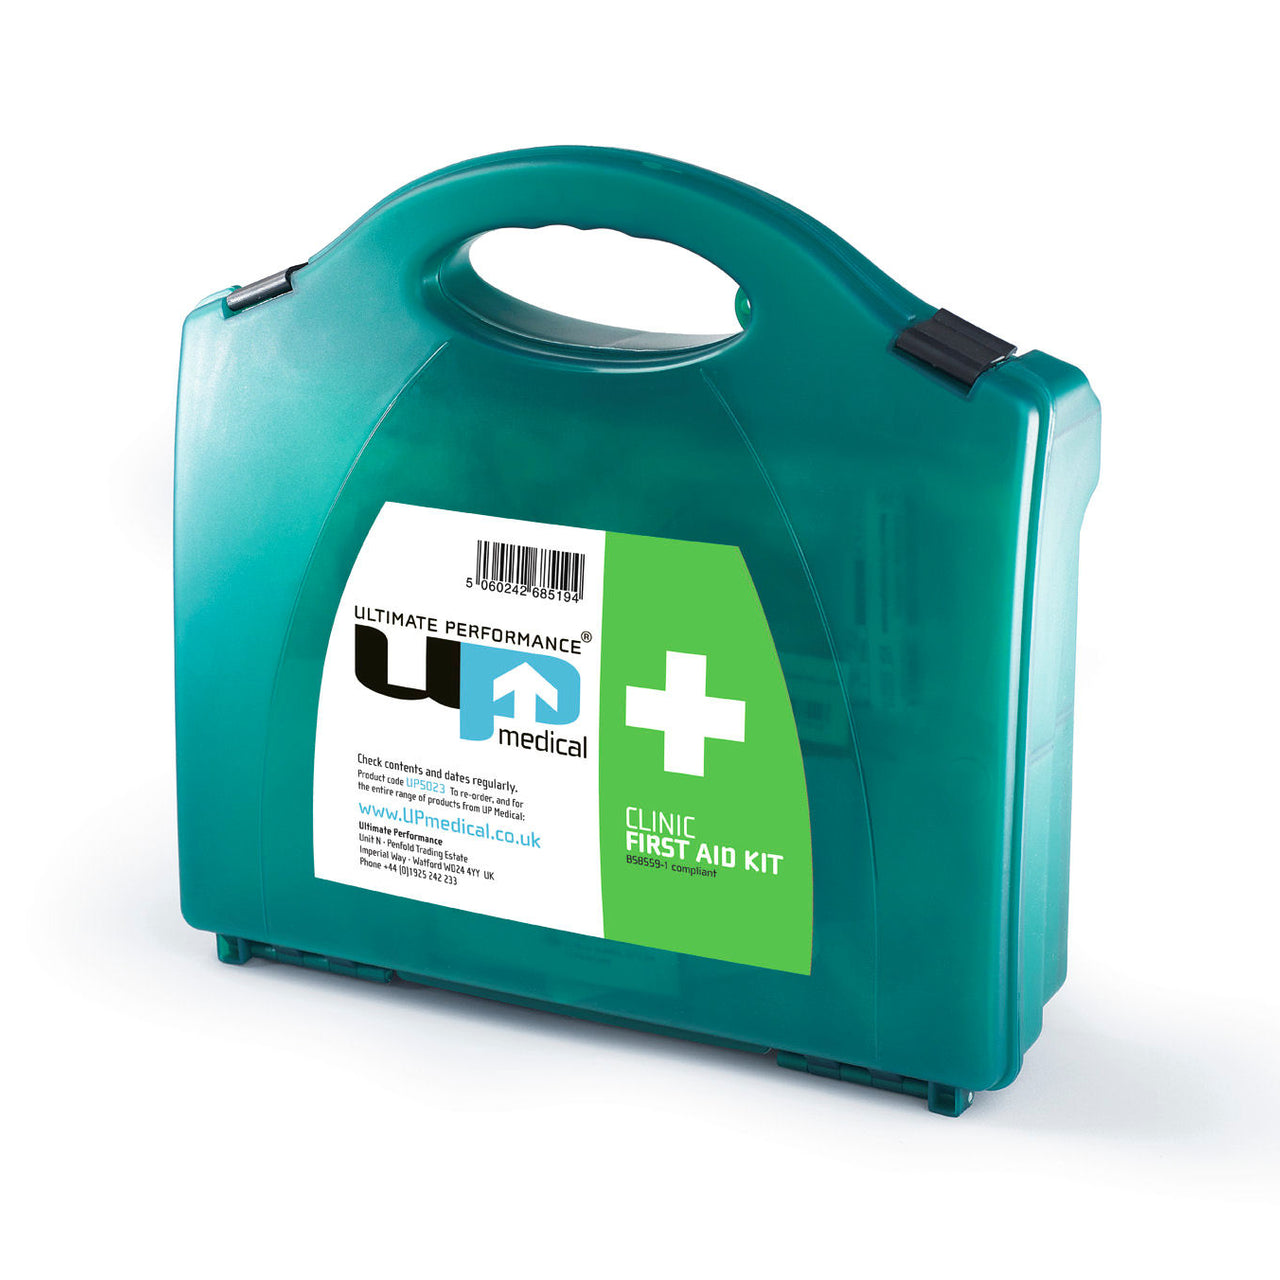 Clinic First Aid Kit